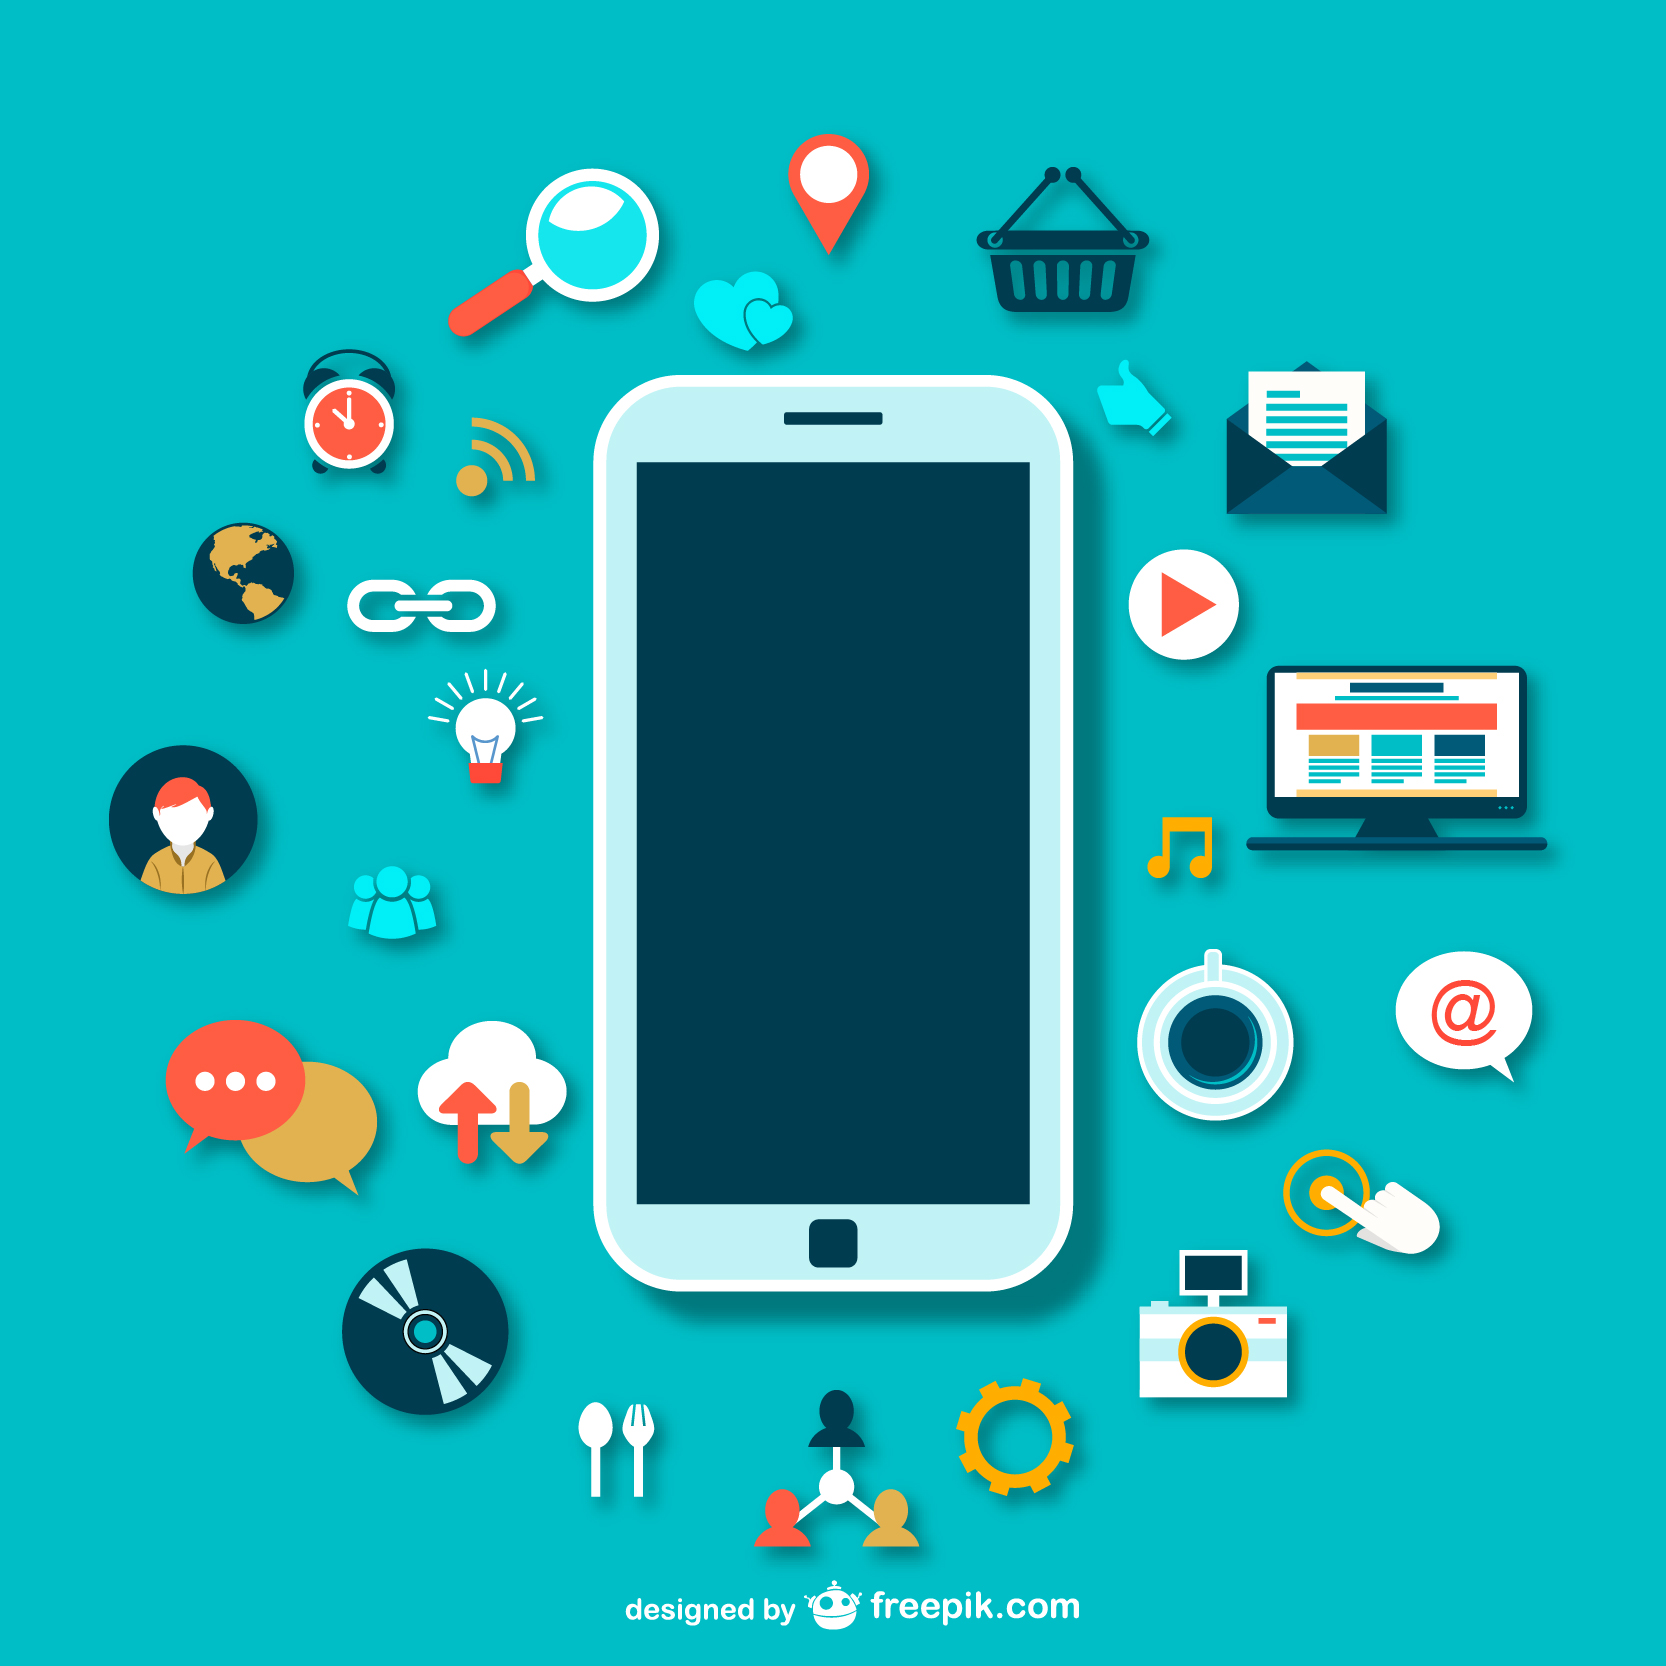 Work communication revolves around the smartphone | Red e App